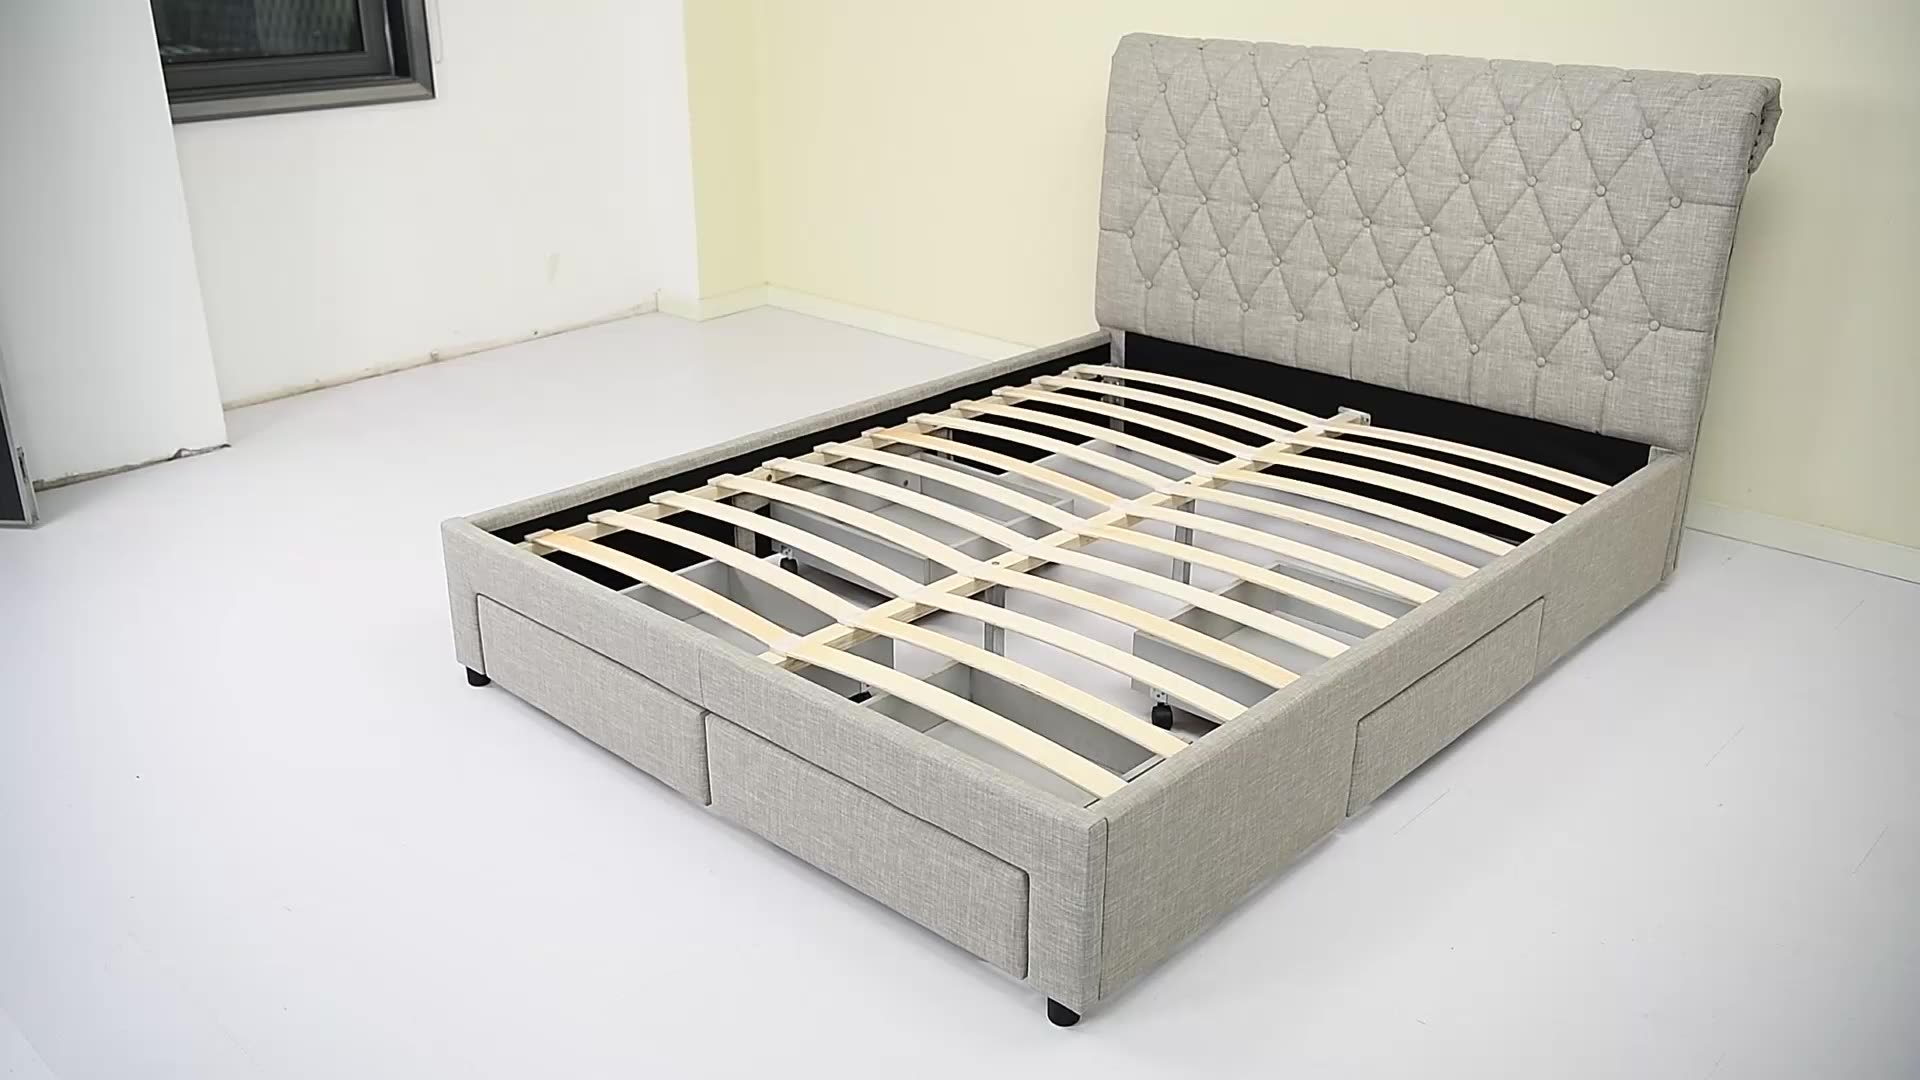 1217D Modern&Luxury European Design Velvet Fabric King Size storage Bed Frame with Sleigh&Rhombus Headboard and four drawers